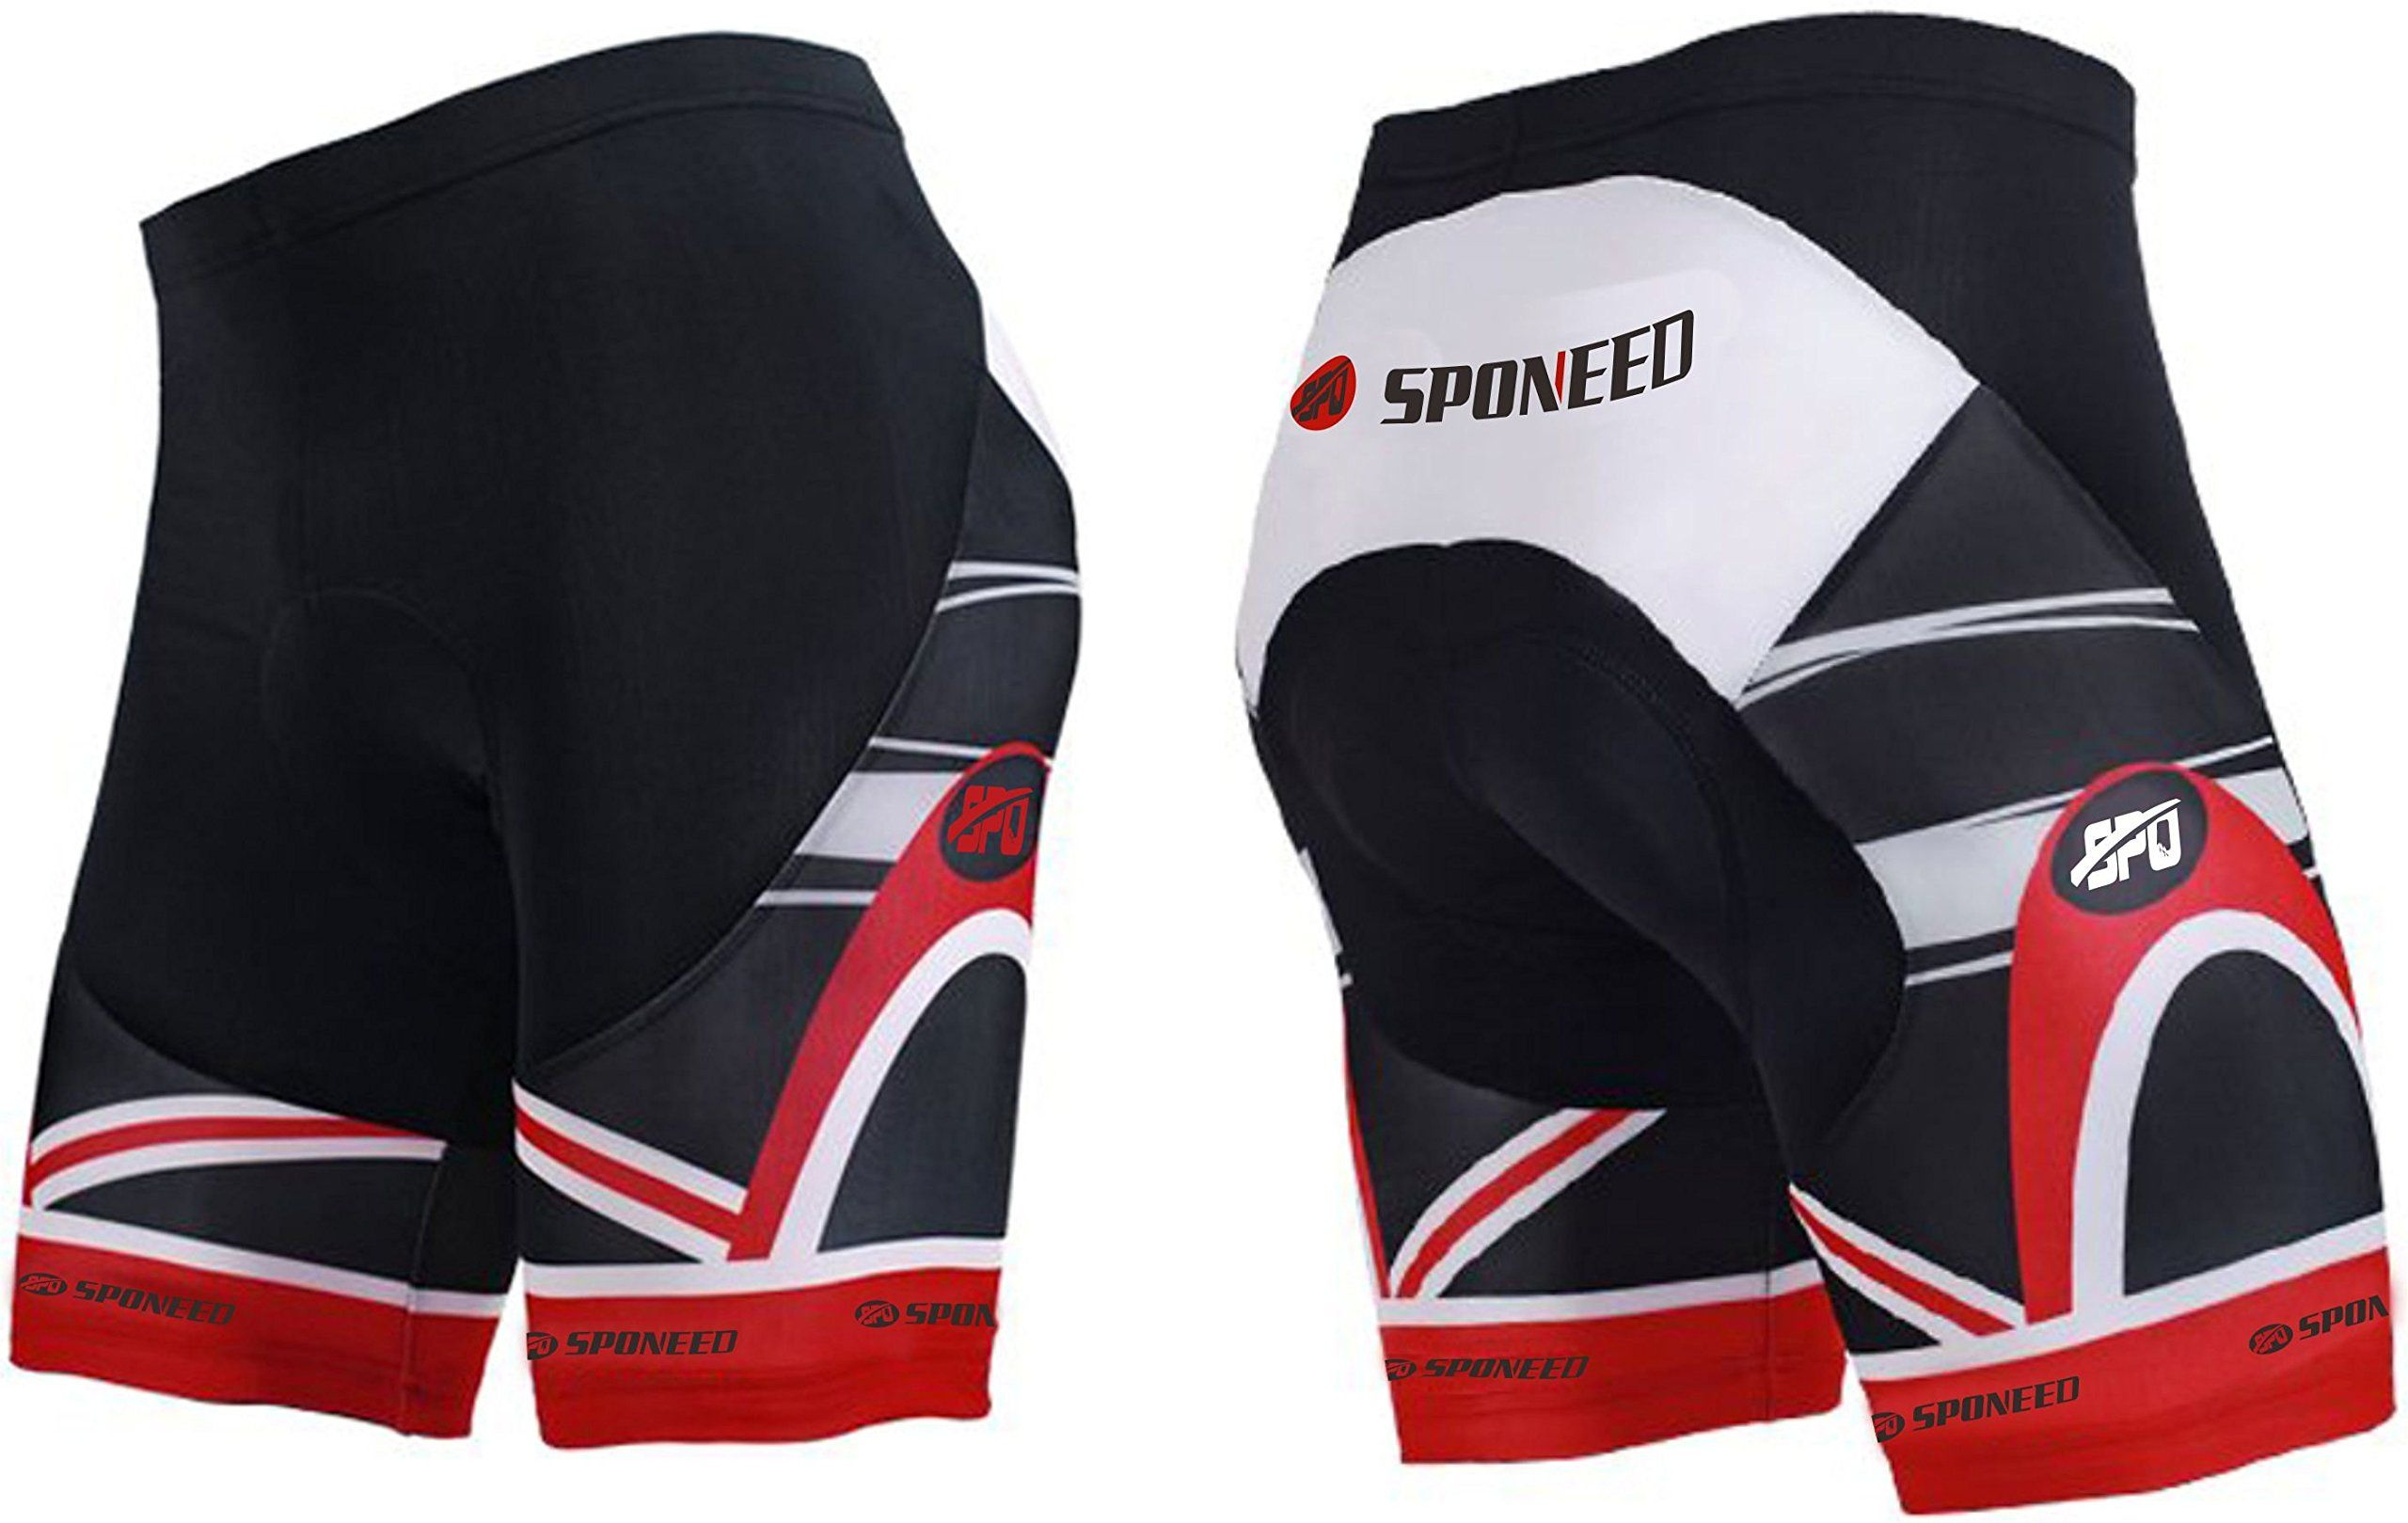 sponeed Mens Cycle Shorts Biking Pants Gel Padding Bicycle Ride Bottoms for Road Bikie MTB